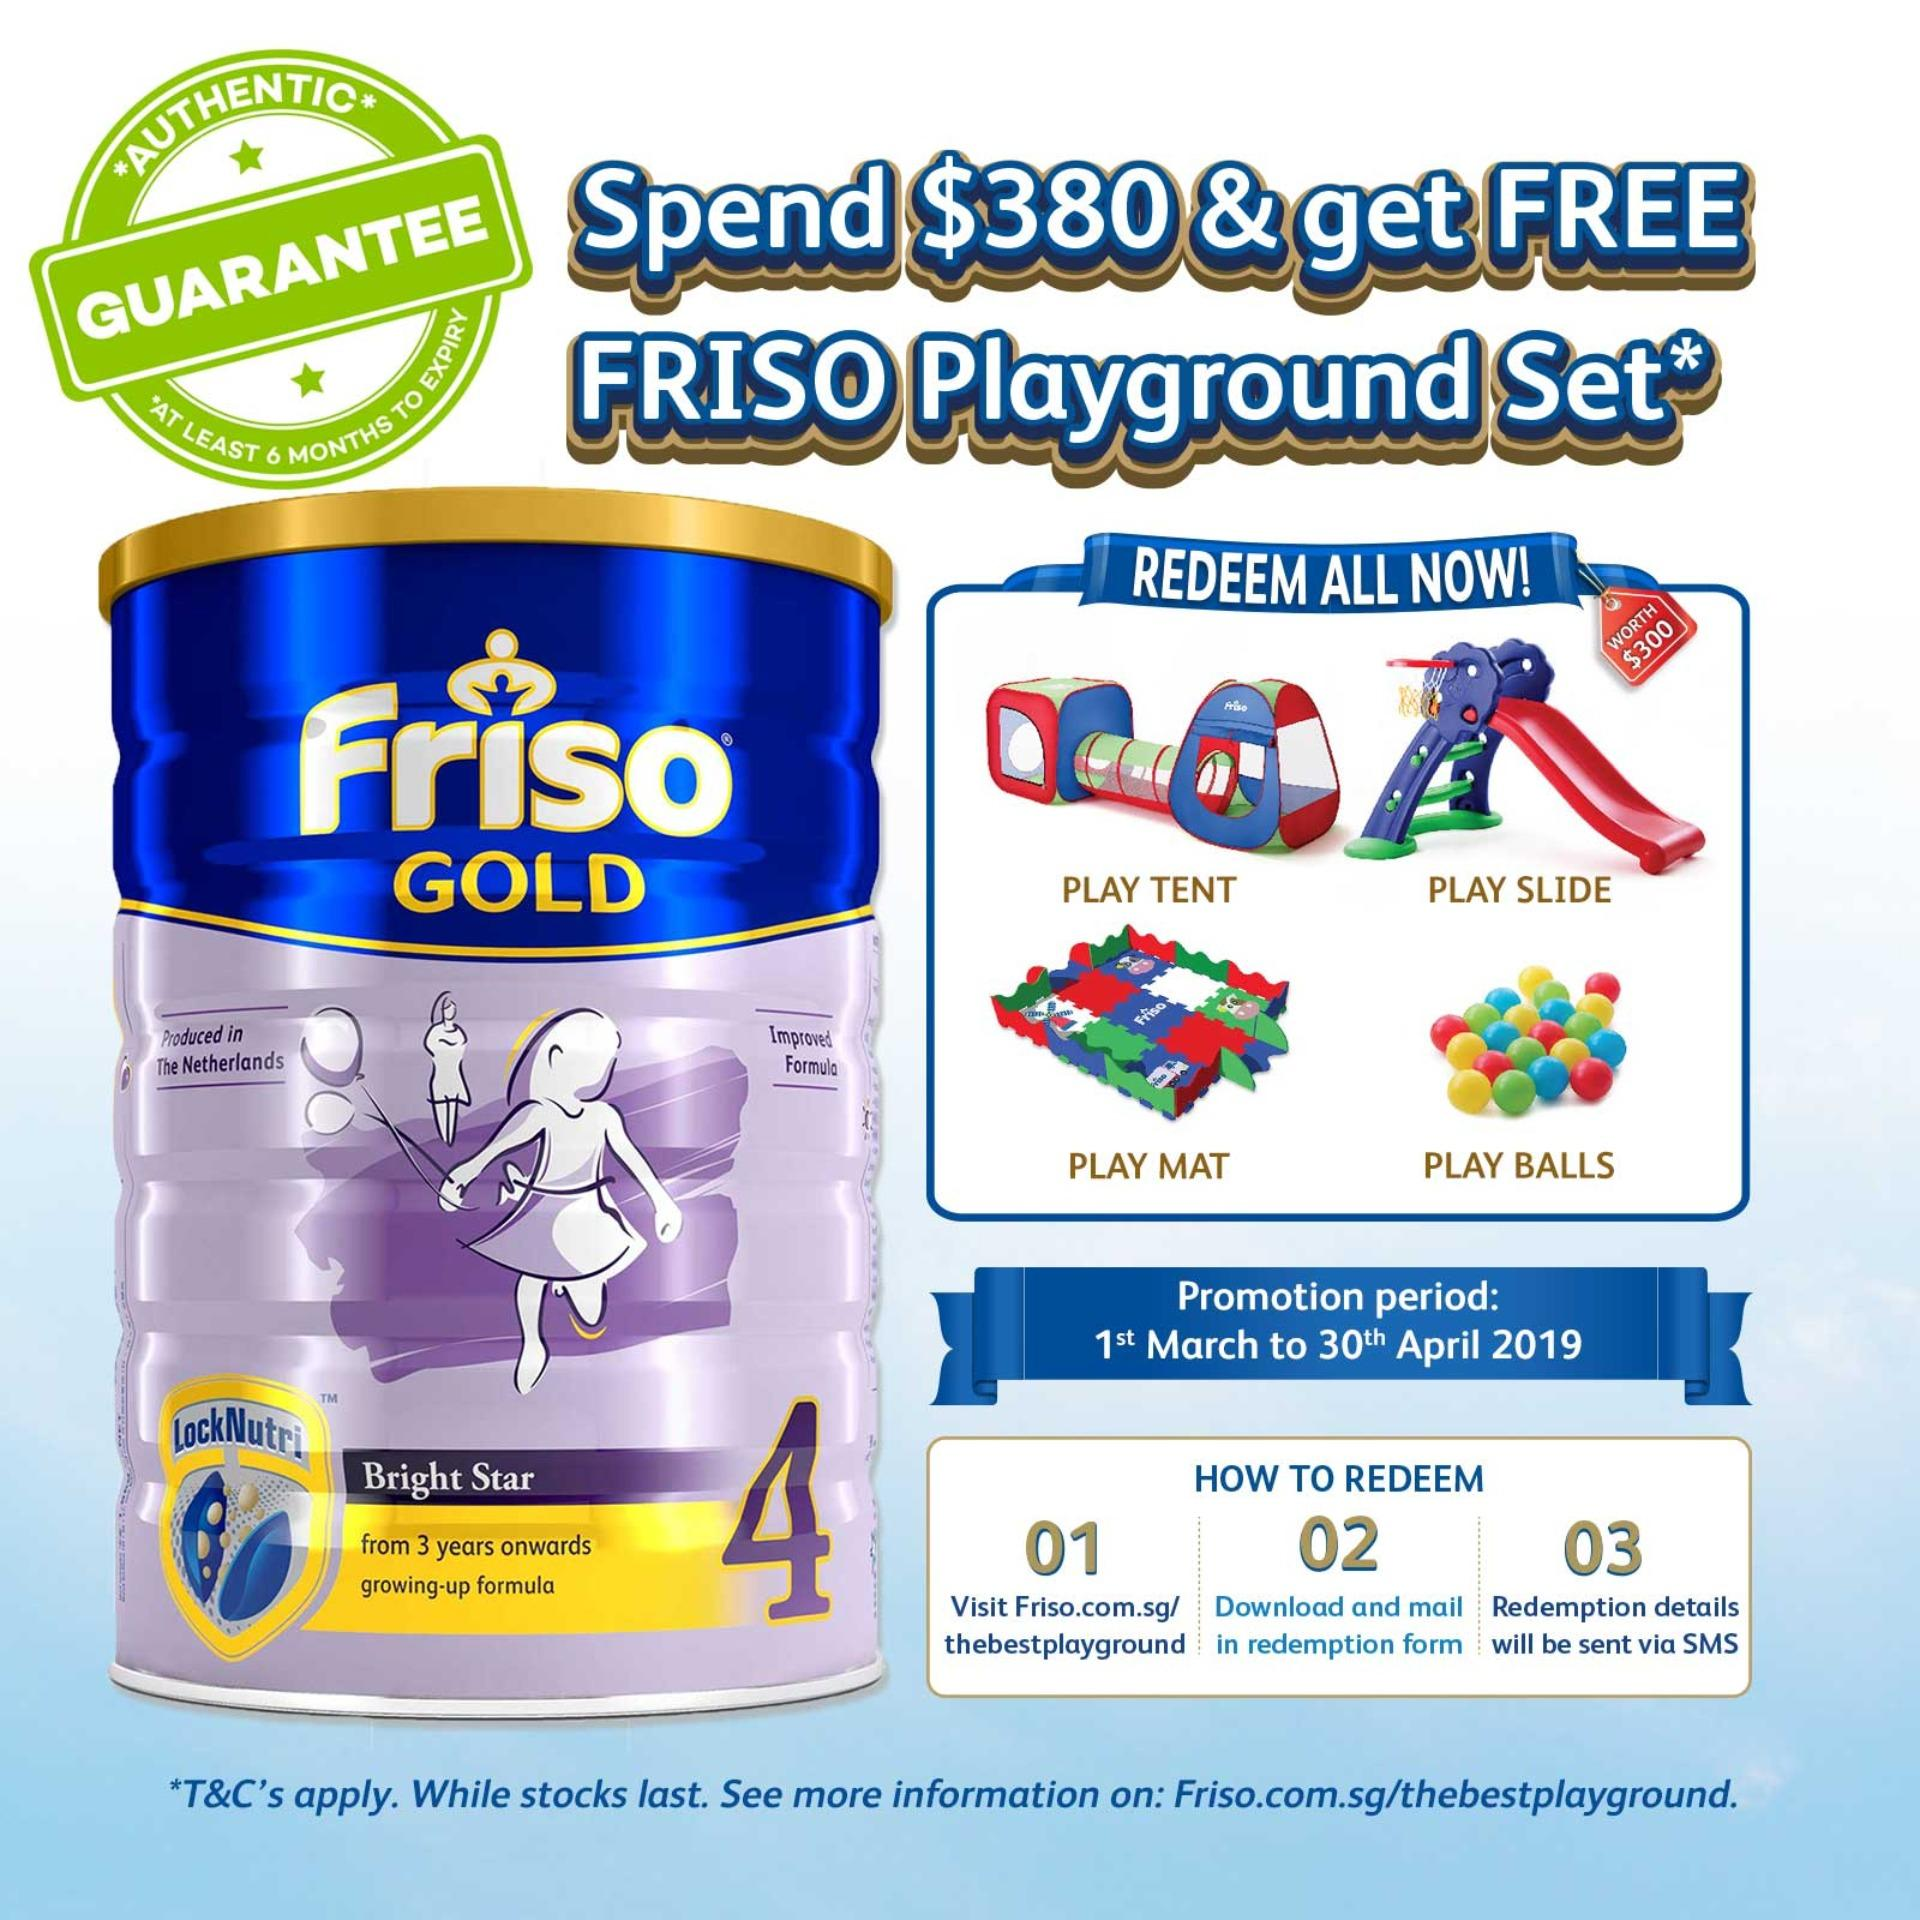 Friso Gold 4 Growing Up Milk 1.8kg By Lazada Retail Friso.